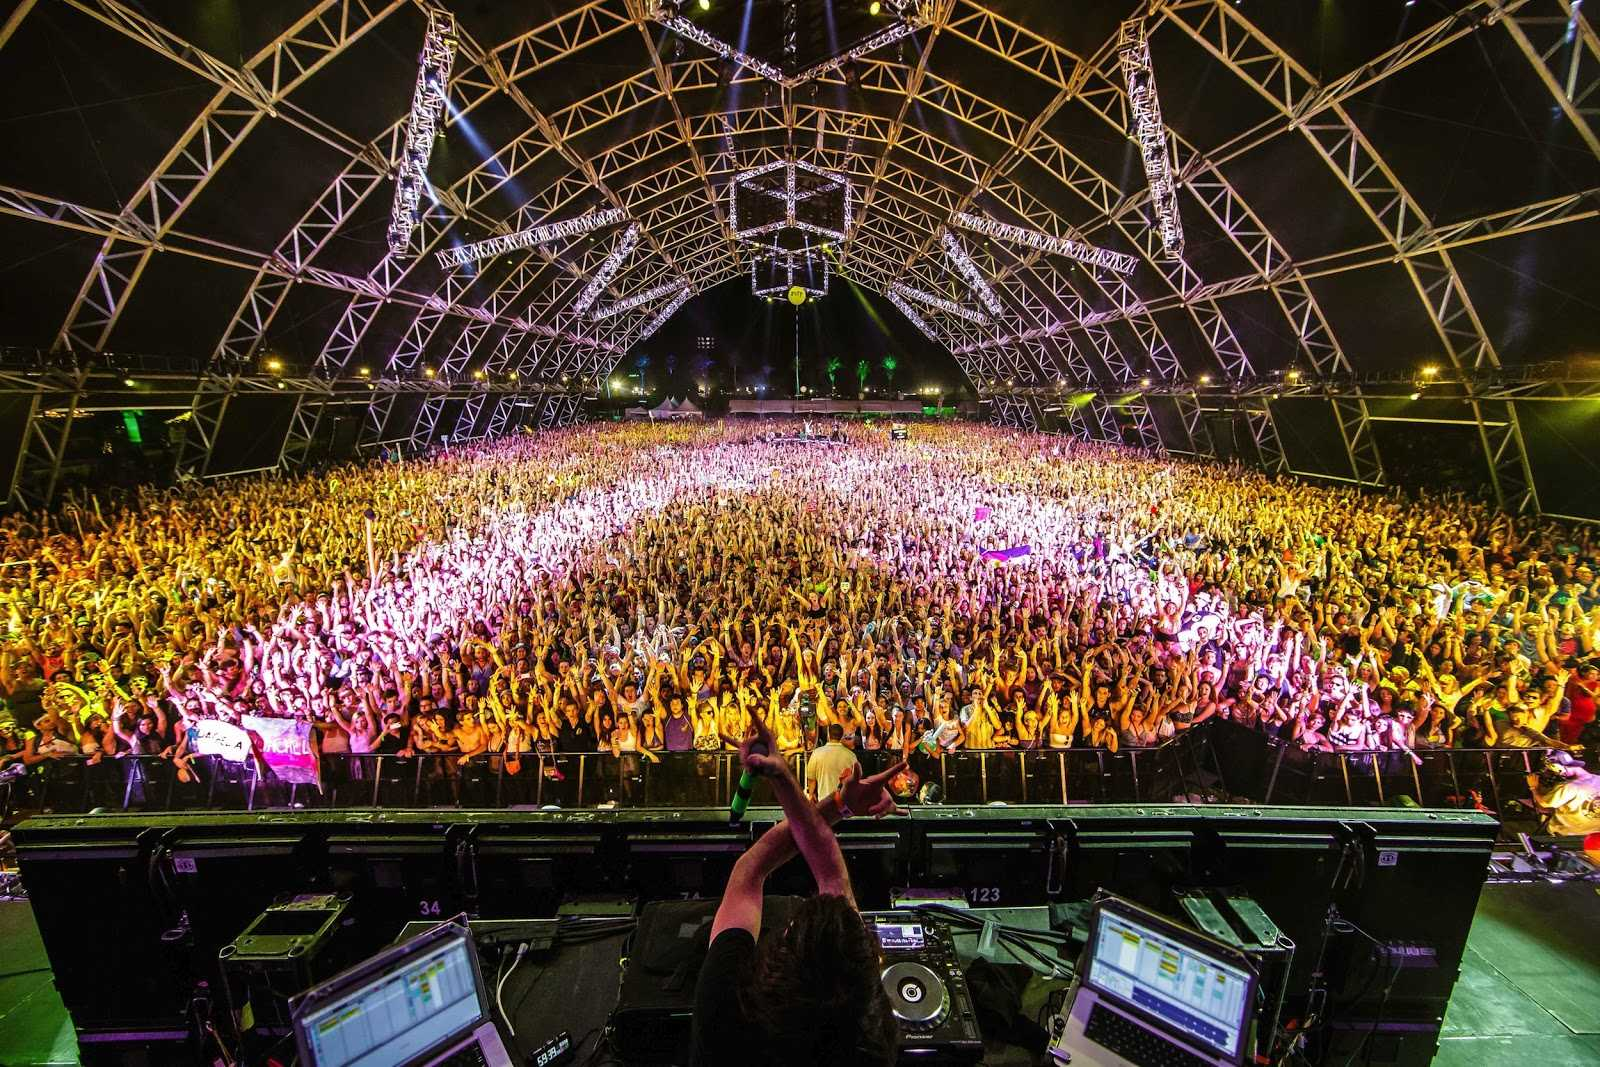 Bassnectar  performs live at Coachella.